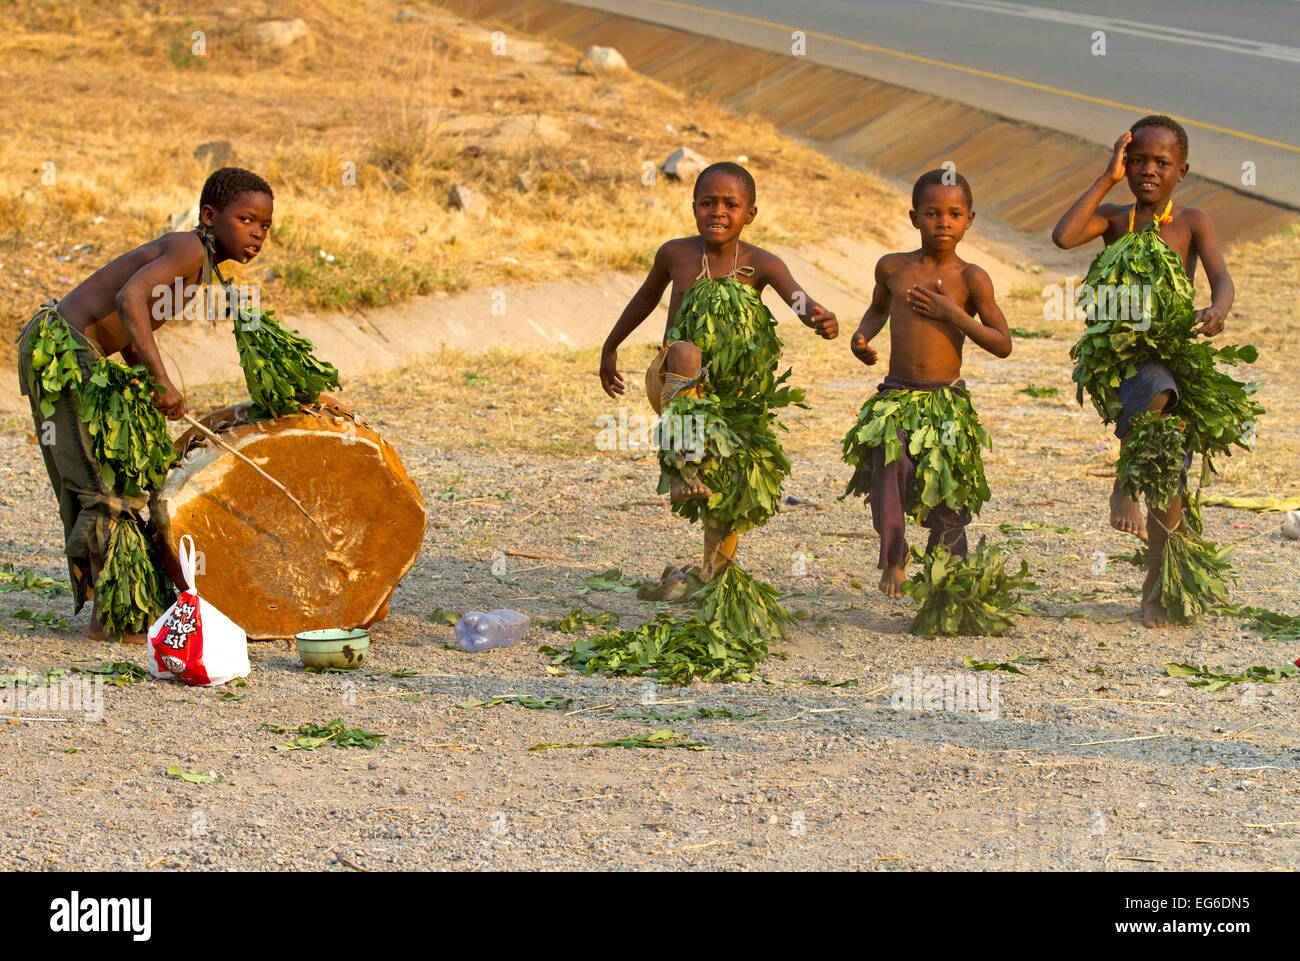 Boys busking by the roadside in Swaziland - Stock Image